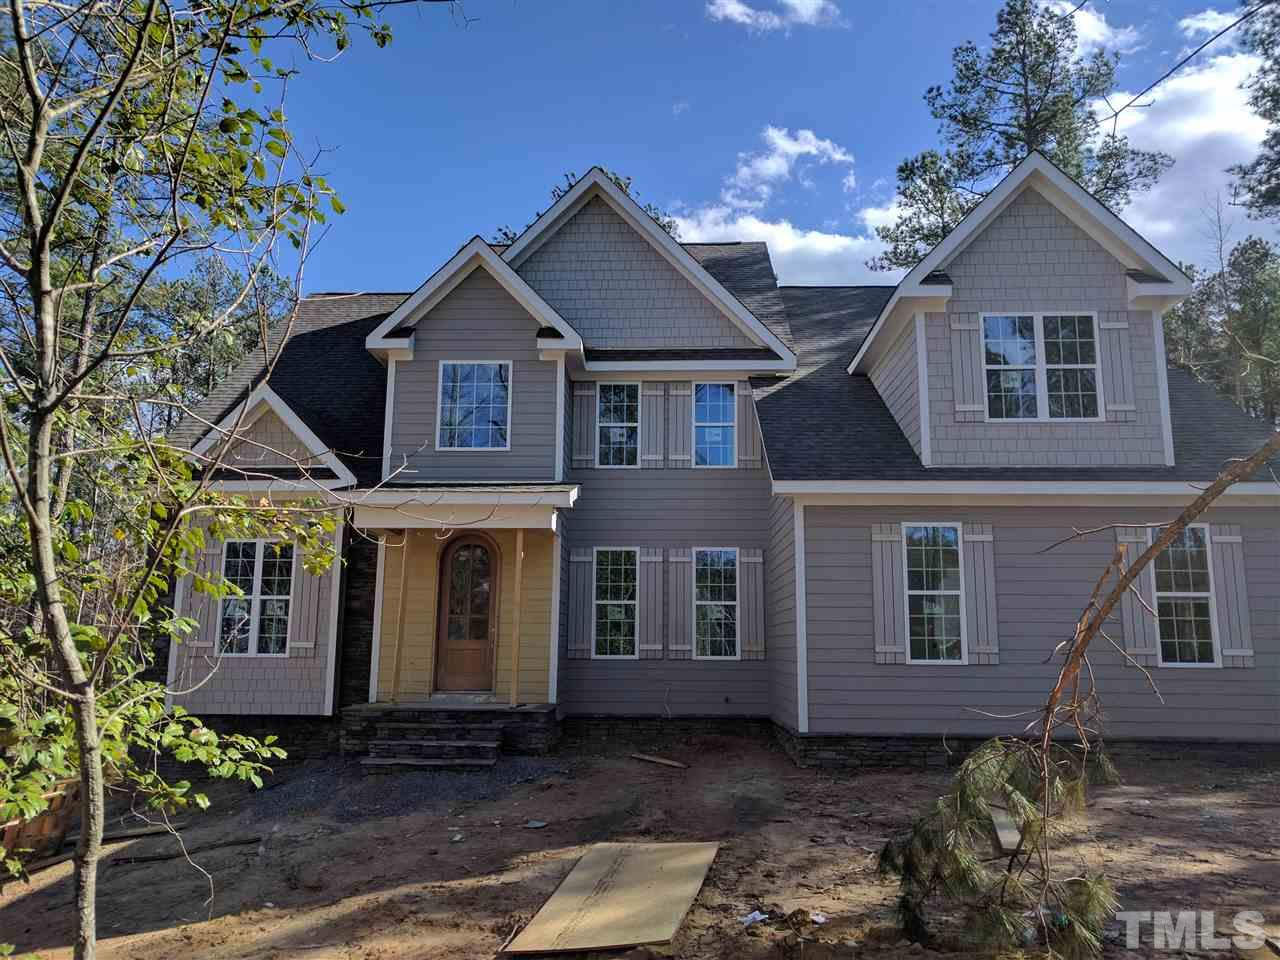 218 Valley View Lane (Lot 17), Pittsboro, NC 27312